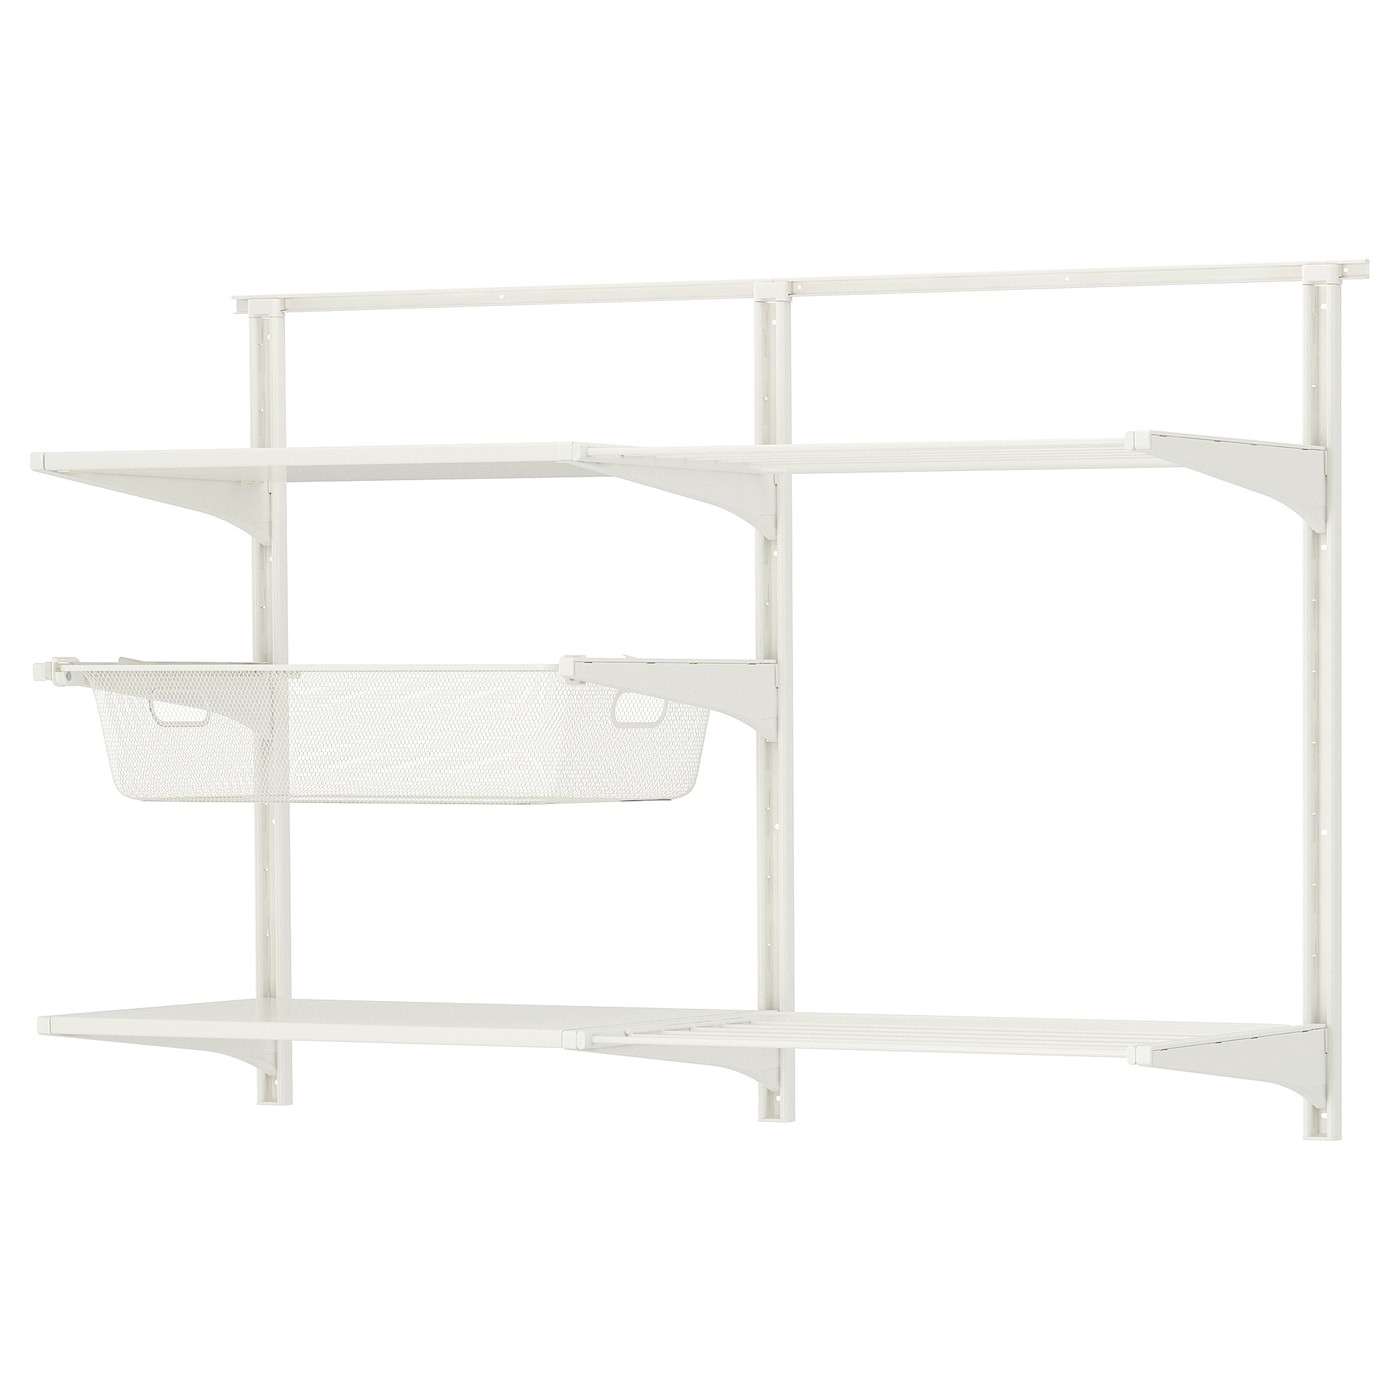 algot wall upright shelves drying rack white 132x41x87 cm. Black Bedroom Furniture Sets. Home Design Ideas